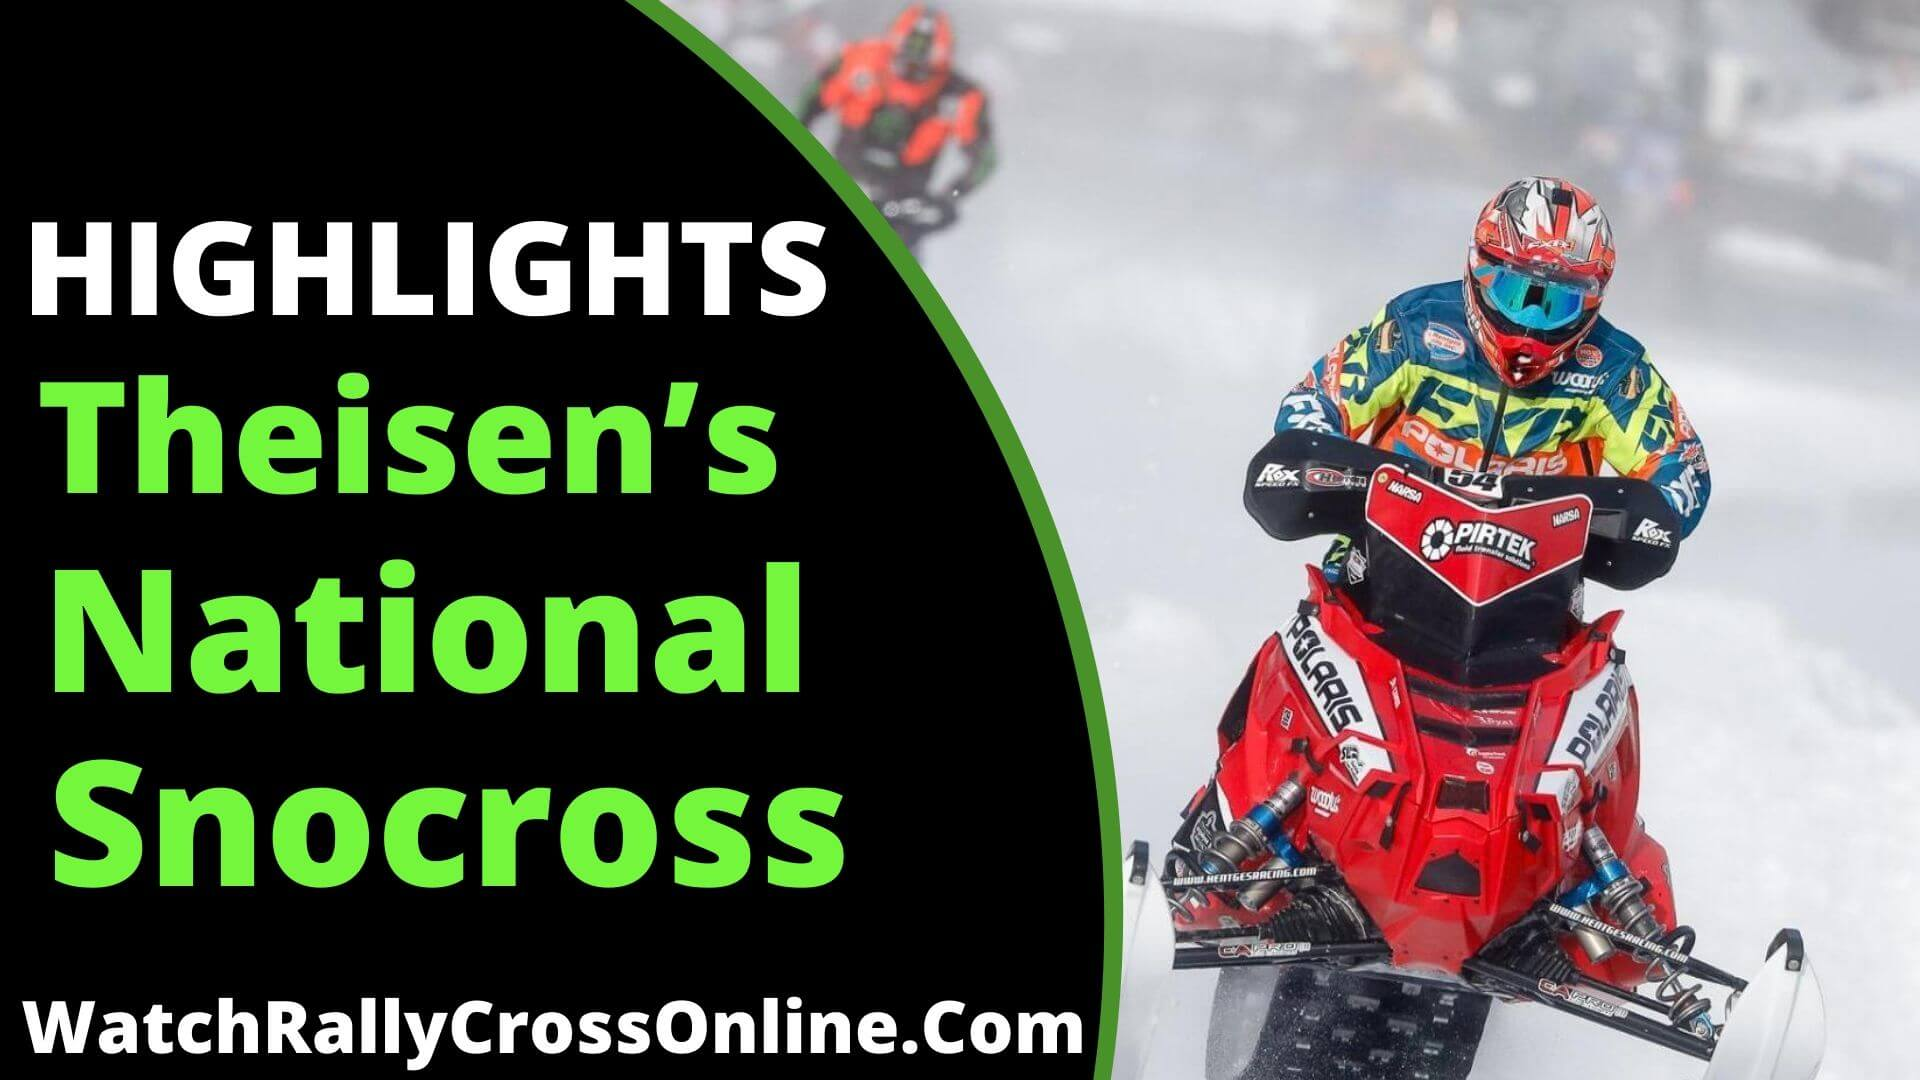 Theisens Snocross National Highlights 2019